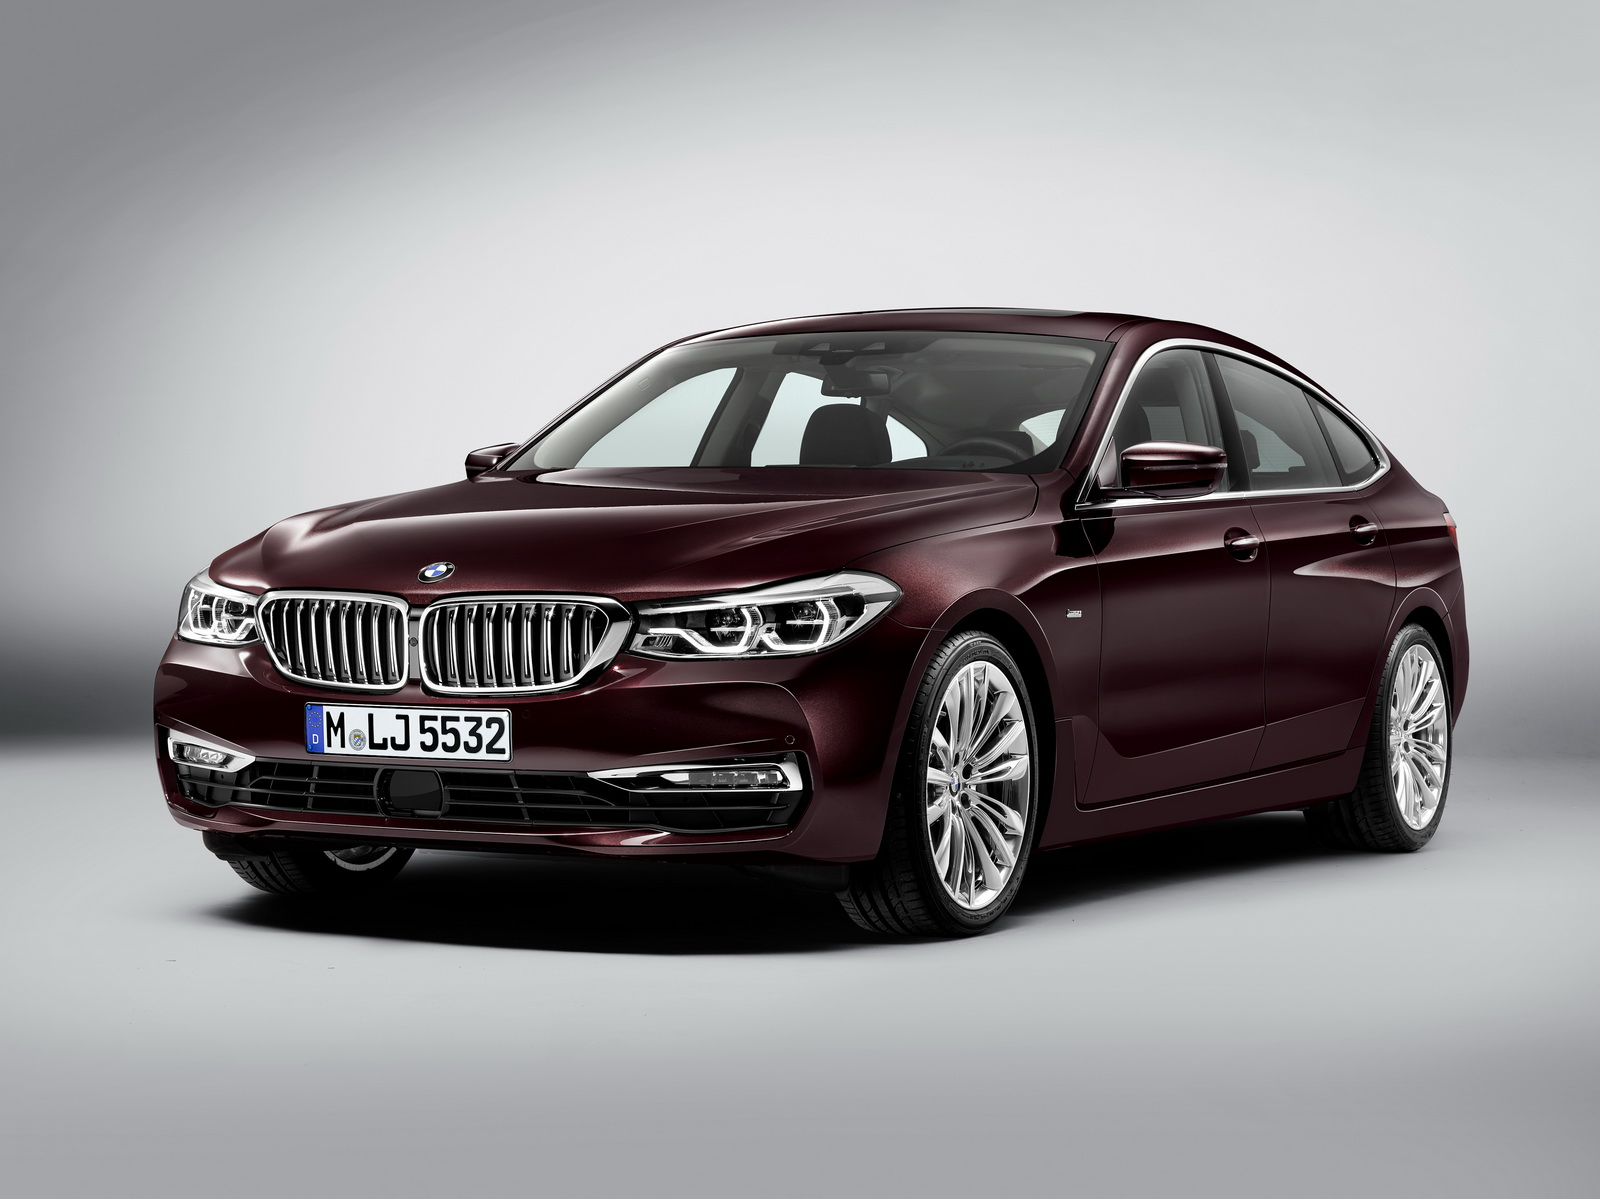 2017 Bmw 6 Series >> Leaked: This is the new BMW 6 Series Gran Turismo - Updated Gallery